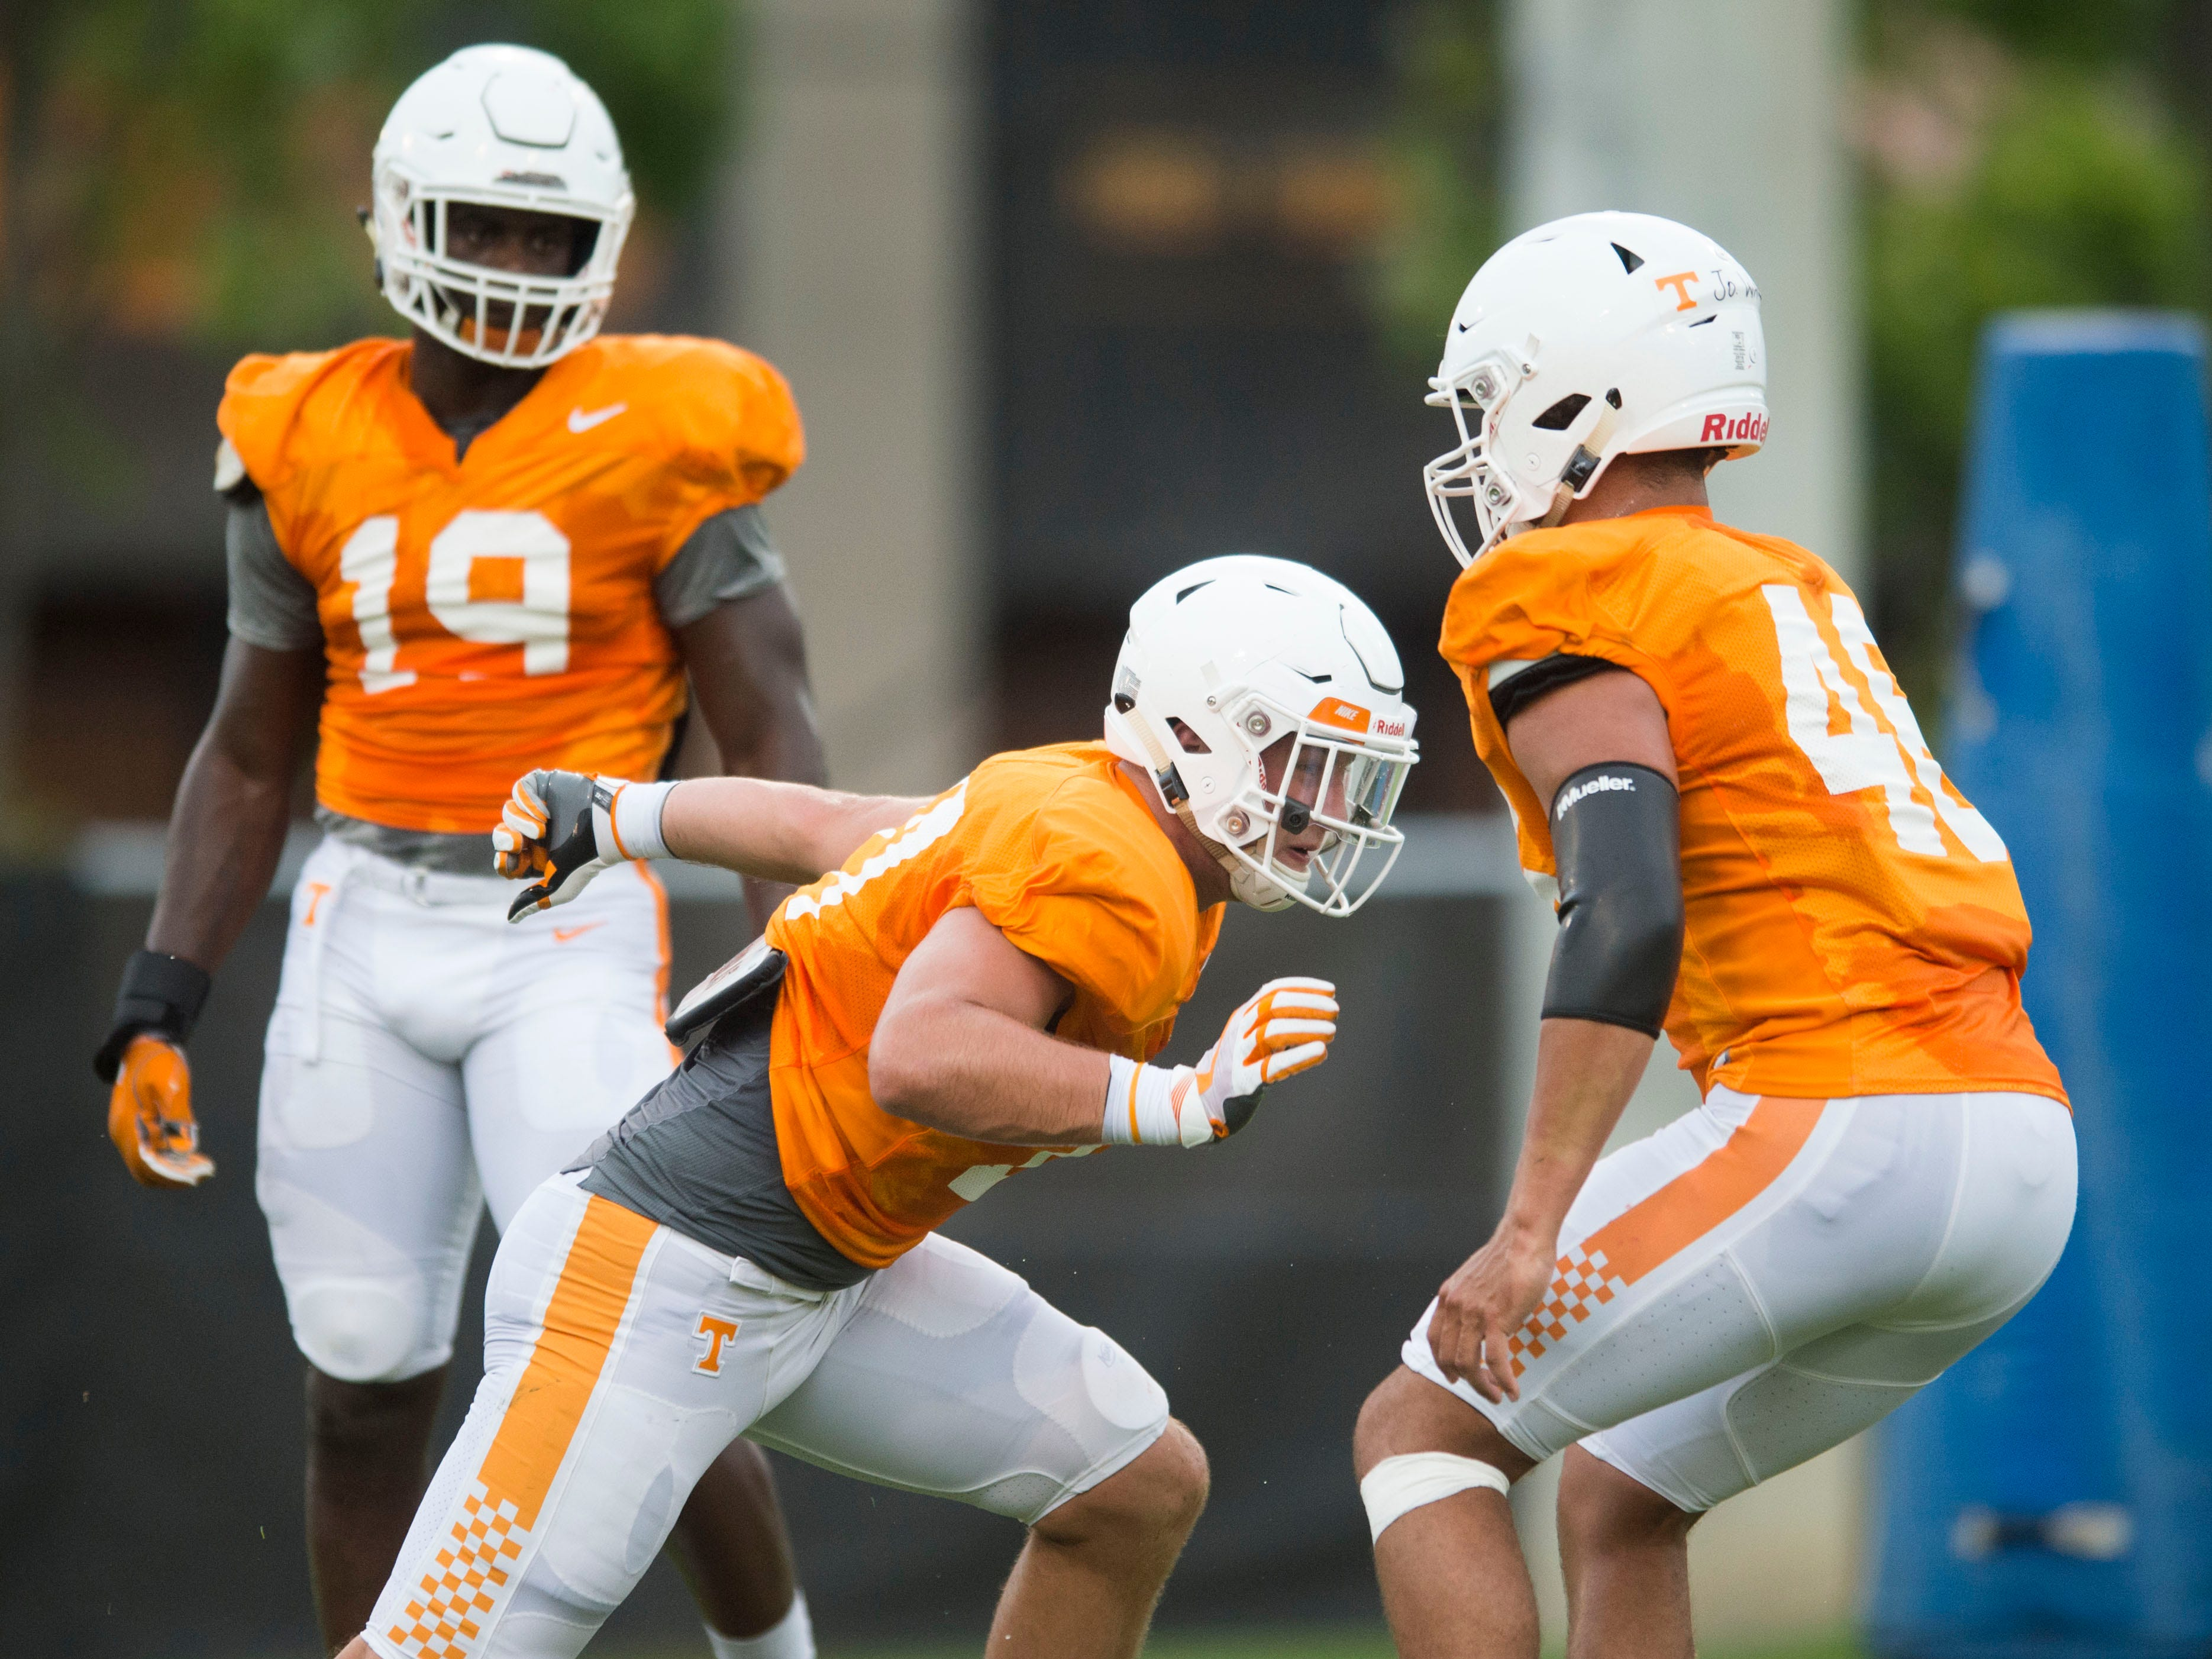 Tennessee linebacker Dillon Bates, left, tried to get past Joshua Warren during drills at football practice on Thursday, August 9, 2018.